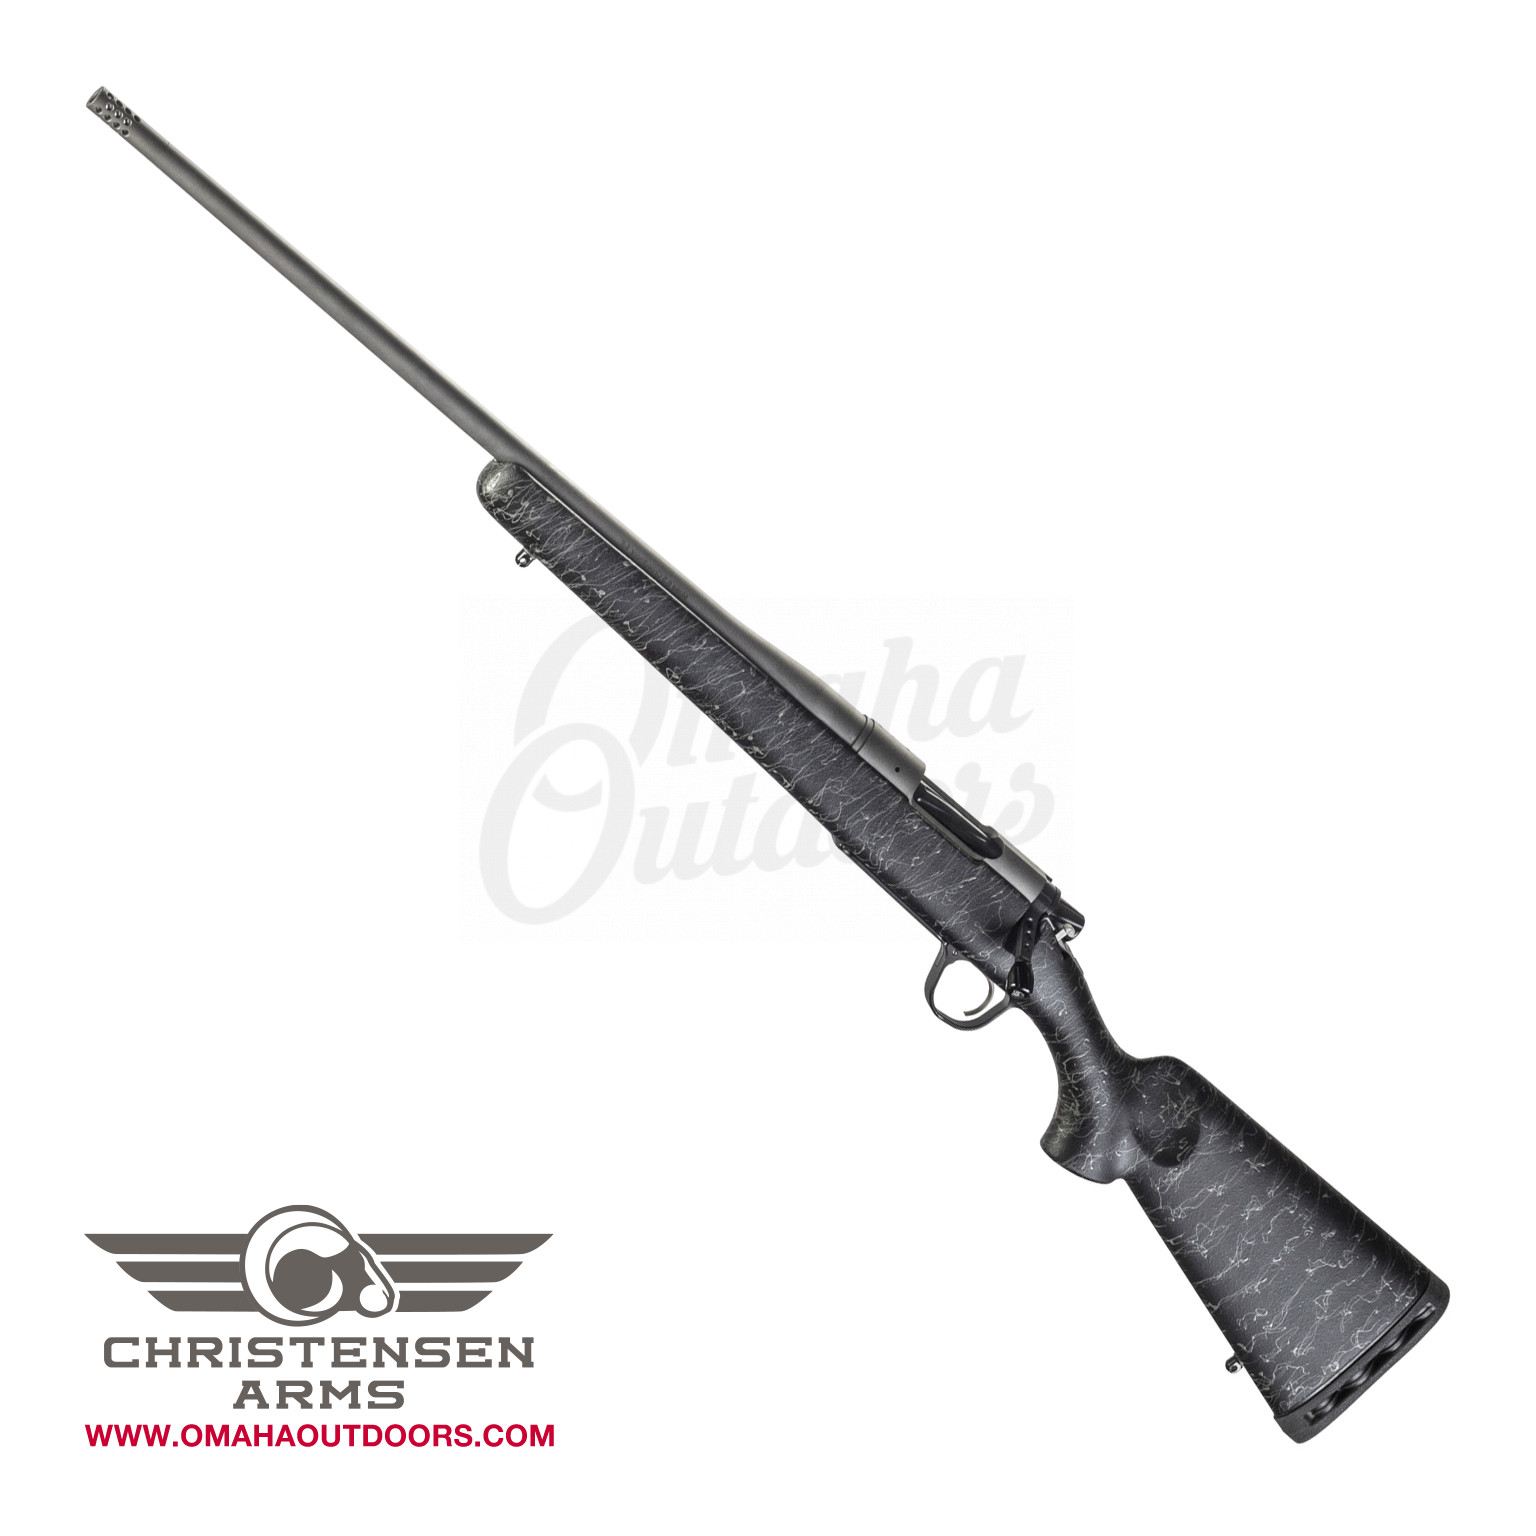 Christensen Arms Mesa Left Hand Bolt Rifle 308 Winchester